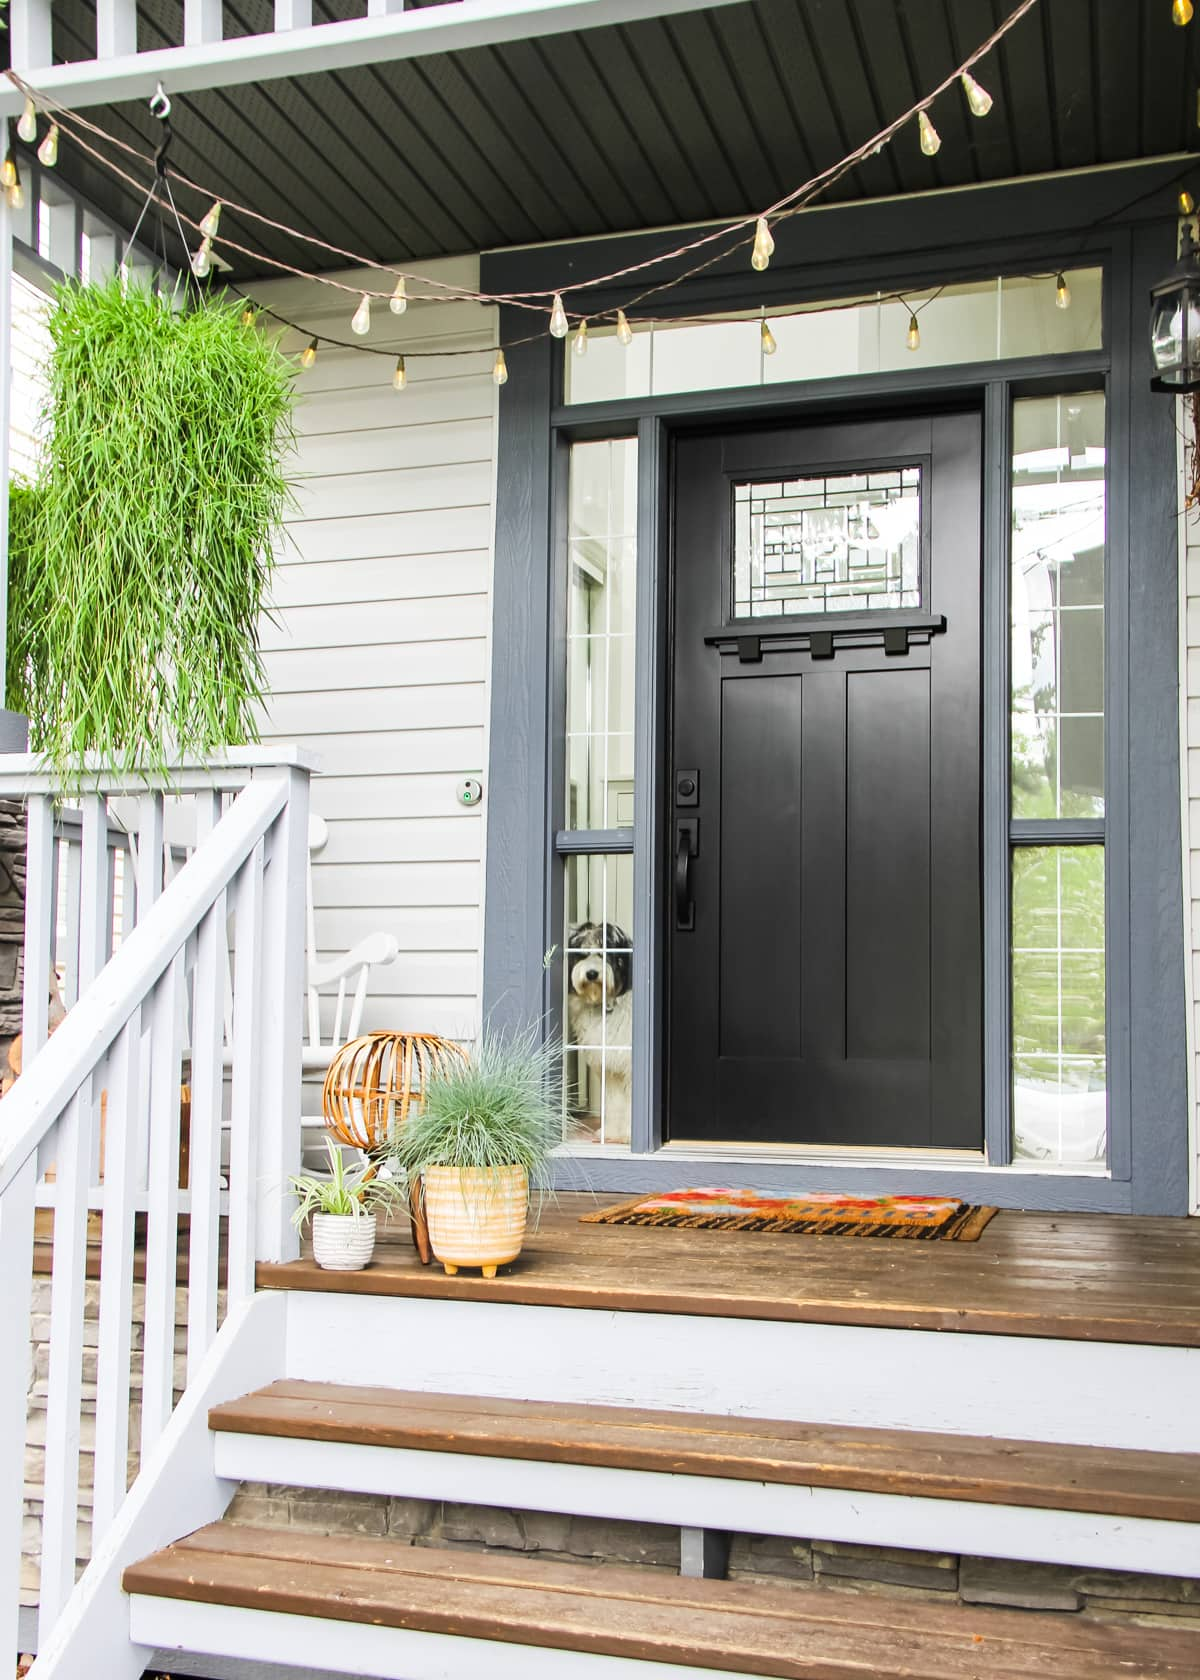 a black front door. on the porch is a hanging basket of grass, a flowered rug, two small planters of grass, and there are lights strung on the ceiling